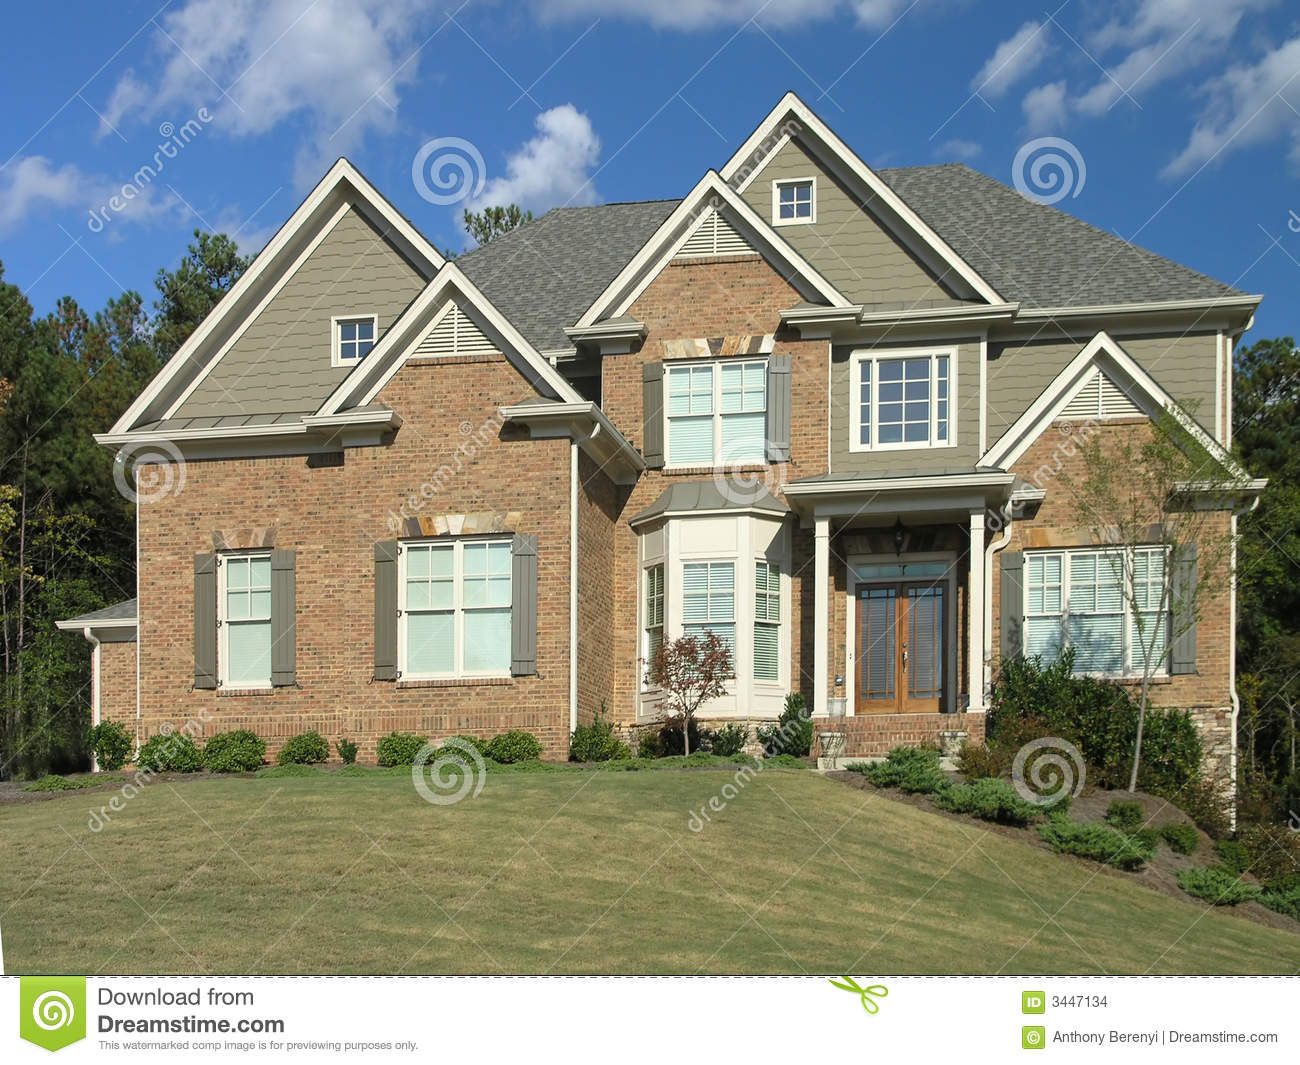 Luxury Home Exterior 47 Stock Images Image 3447134